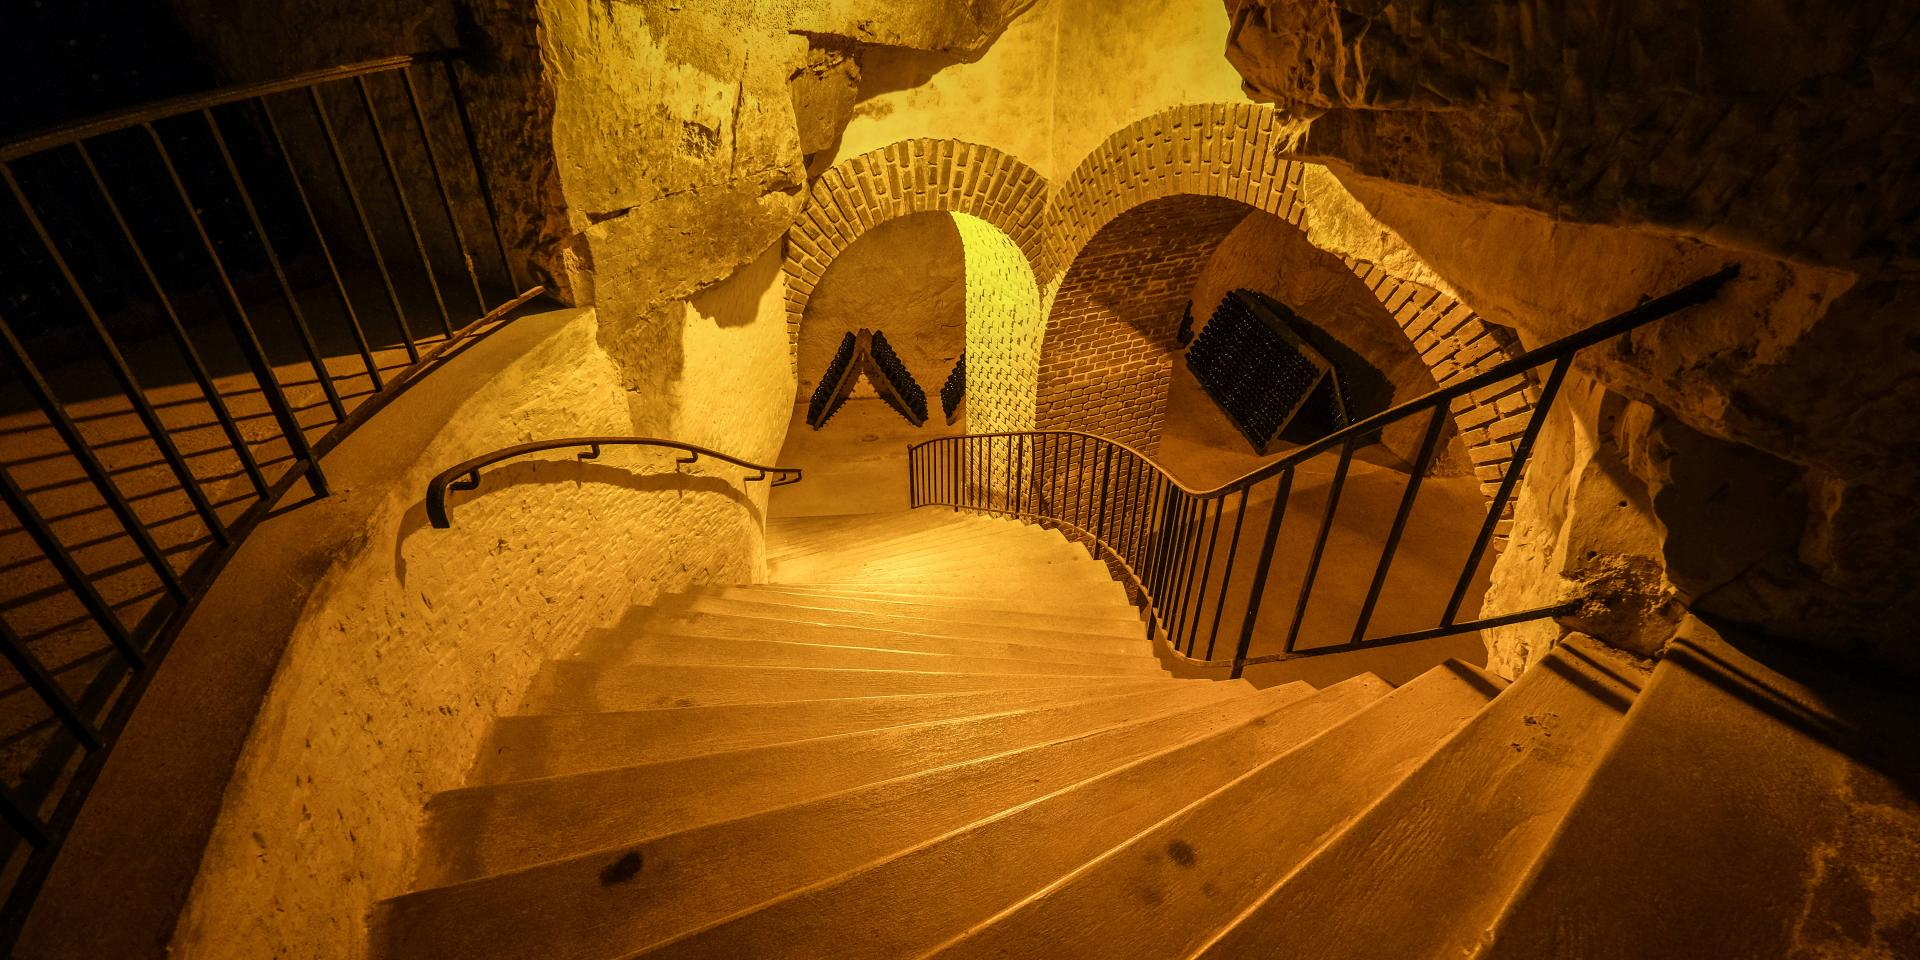 The extensive Gallo-Roman cellars (crayères) at Taittinger go down to a depth of 18 metres